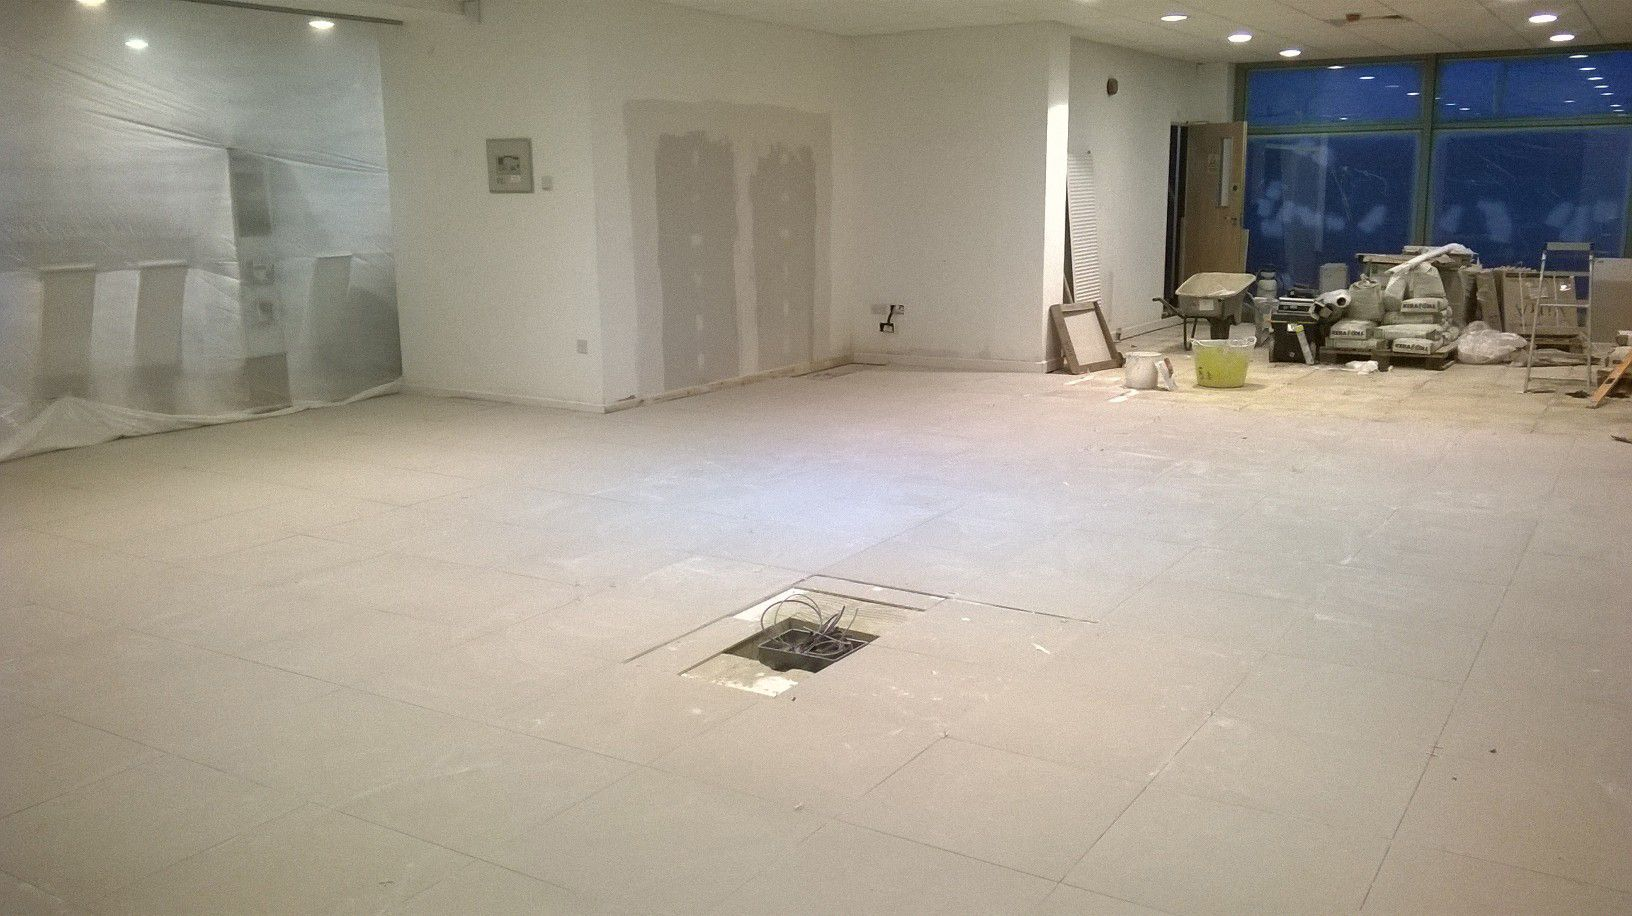 The large yeomans honda guildford showroom being tiled with large the large yeomans honda guildford showroom being tiled with large beige porcelain floor tiles by uk dailygadgetfo Images